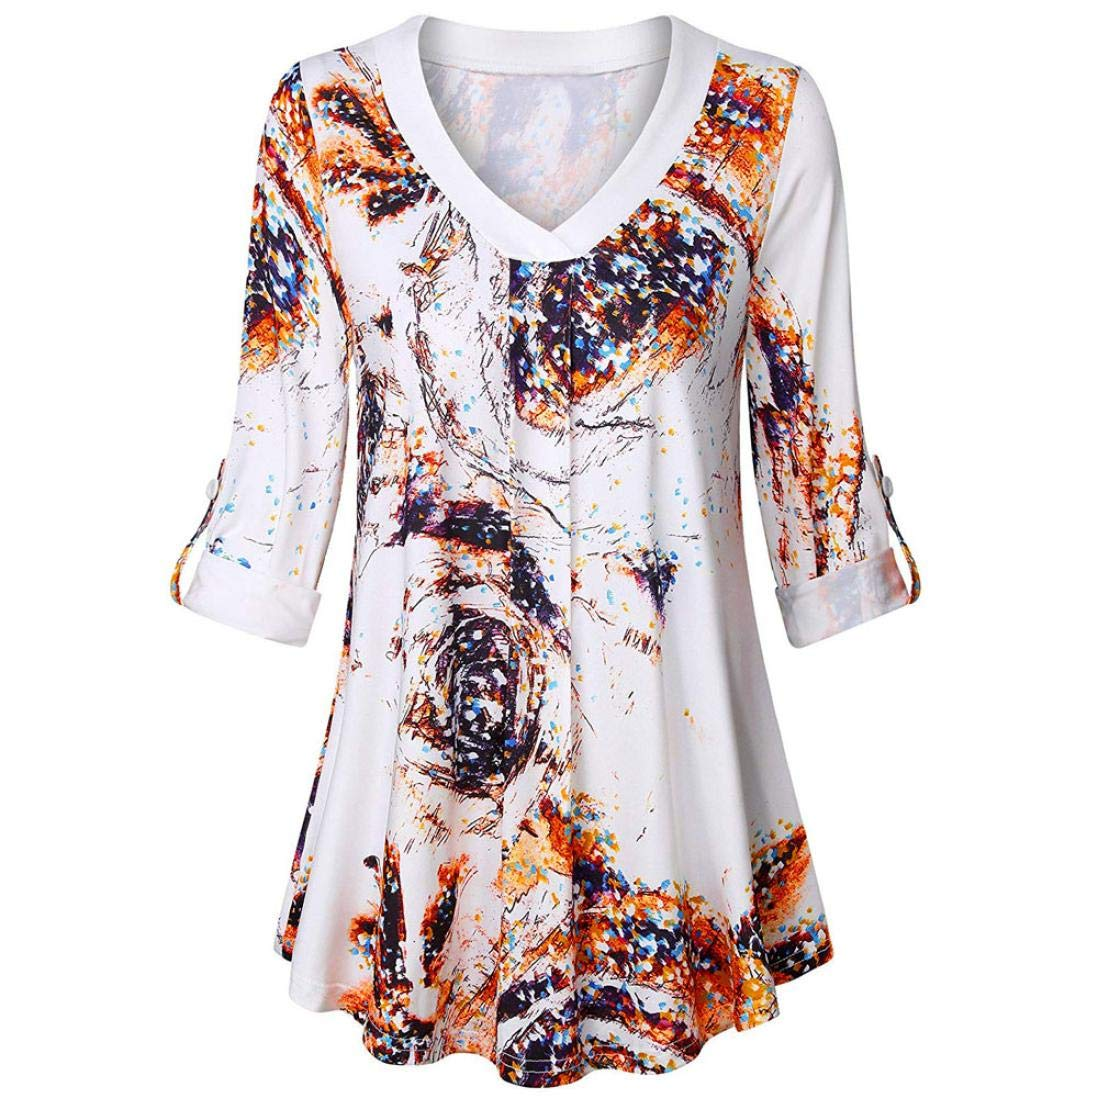 4266ffc06f98e Amazon.com  Liraly Womens Tops Clearance Womens Blouses On Sale New Fashion  Womens Long Sleeve Casual Loose Tops Tunic Shirt  Clothing